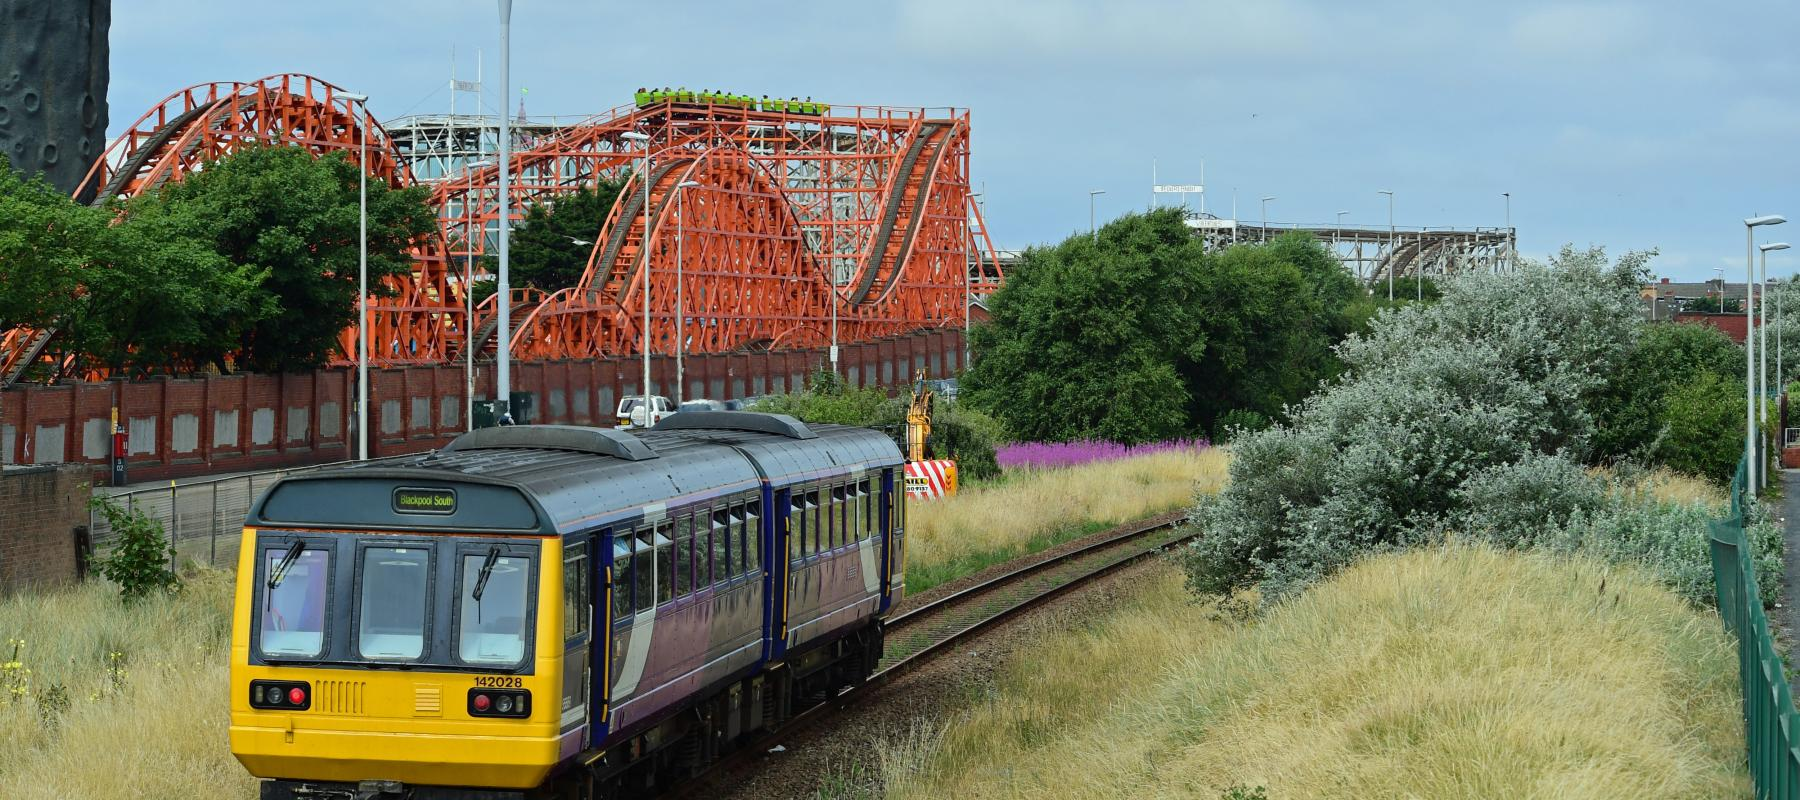 Train in front of Blackpool Pleasure Beach, South Fylde Line